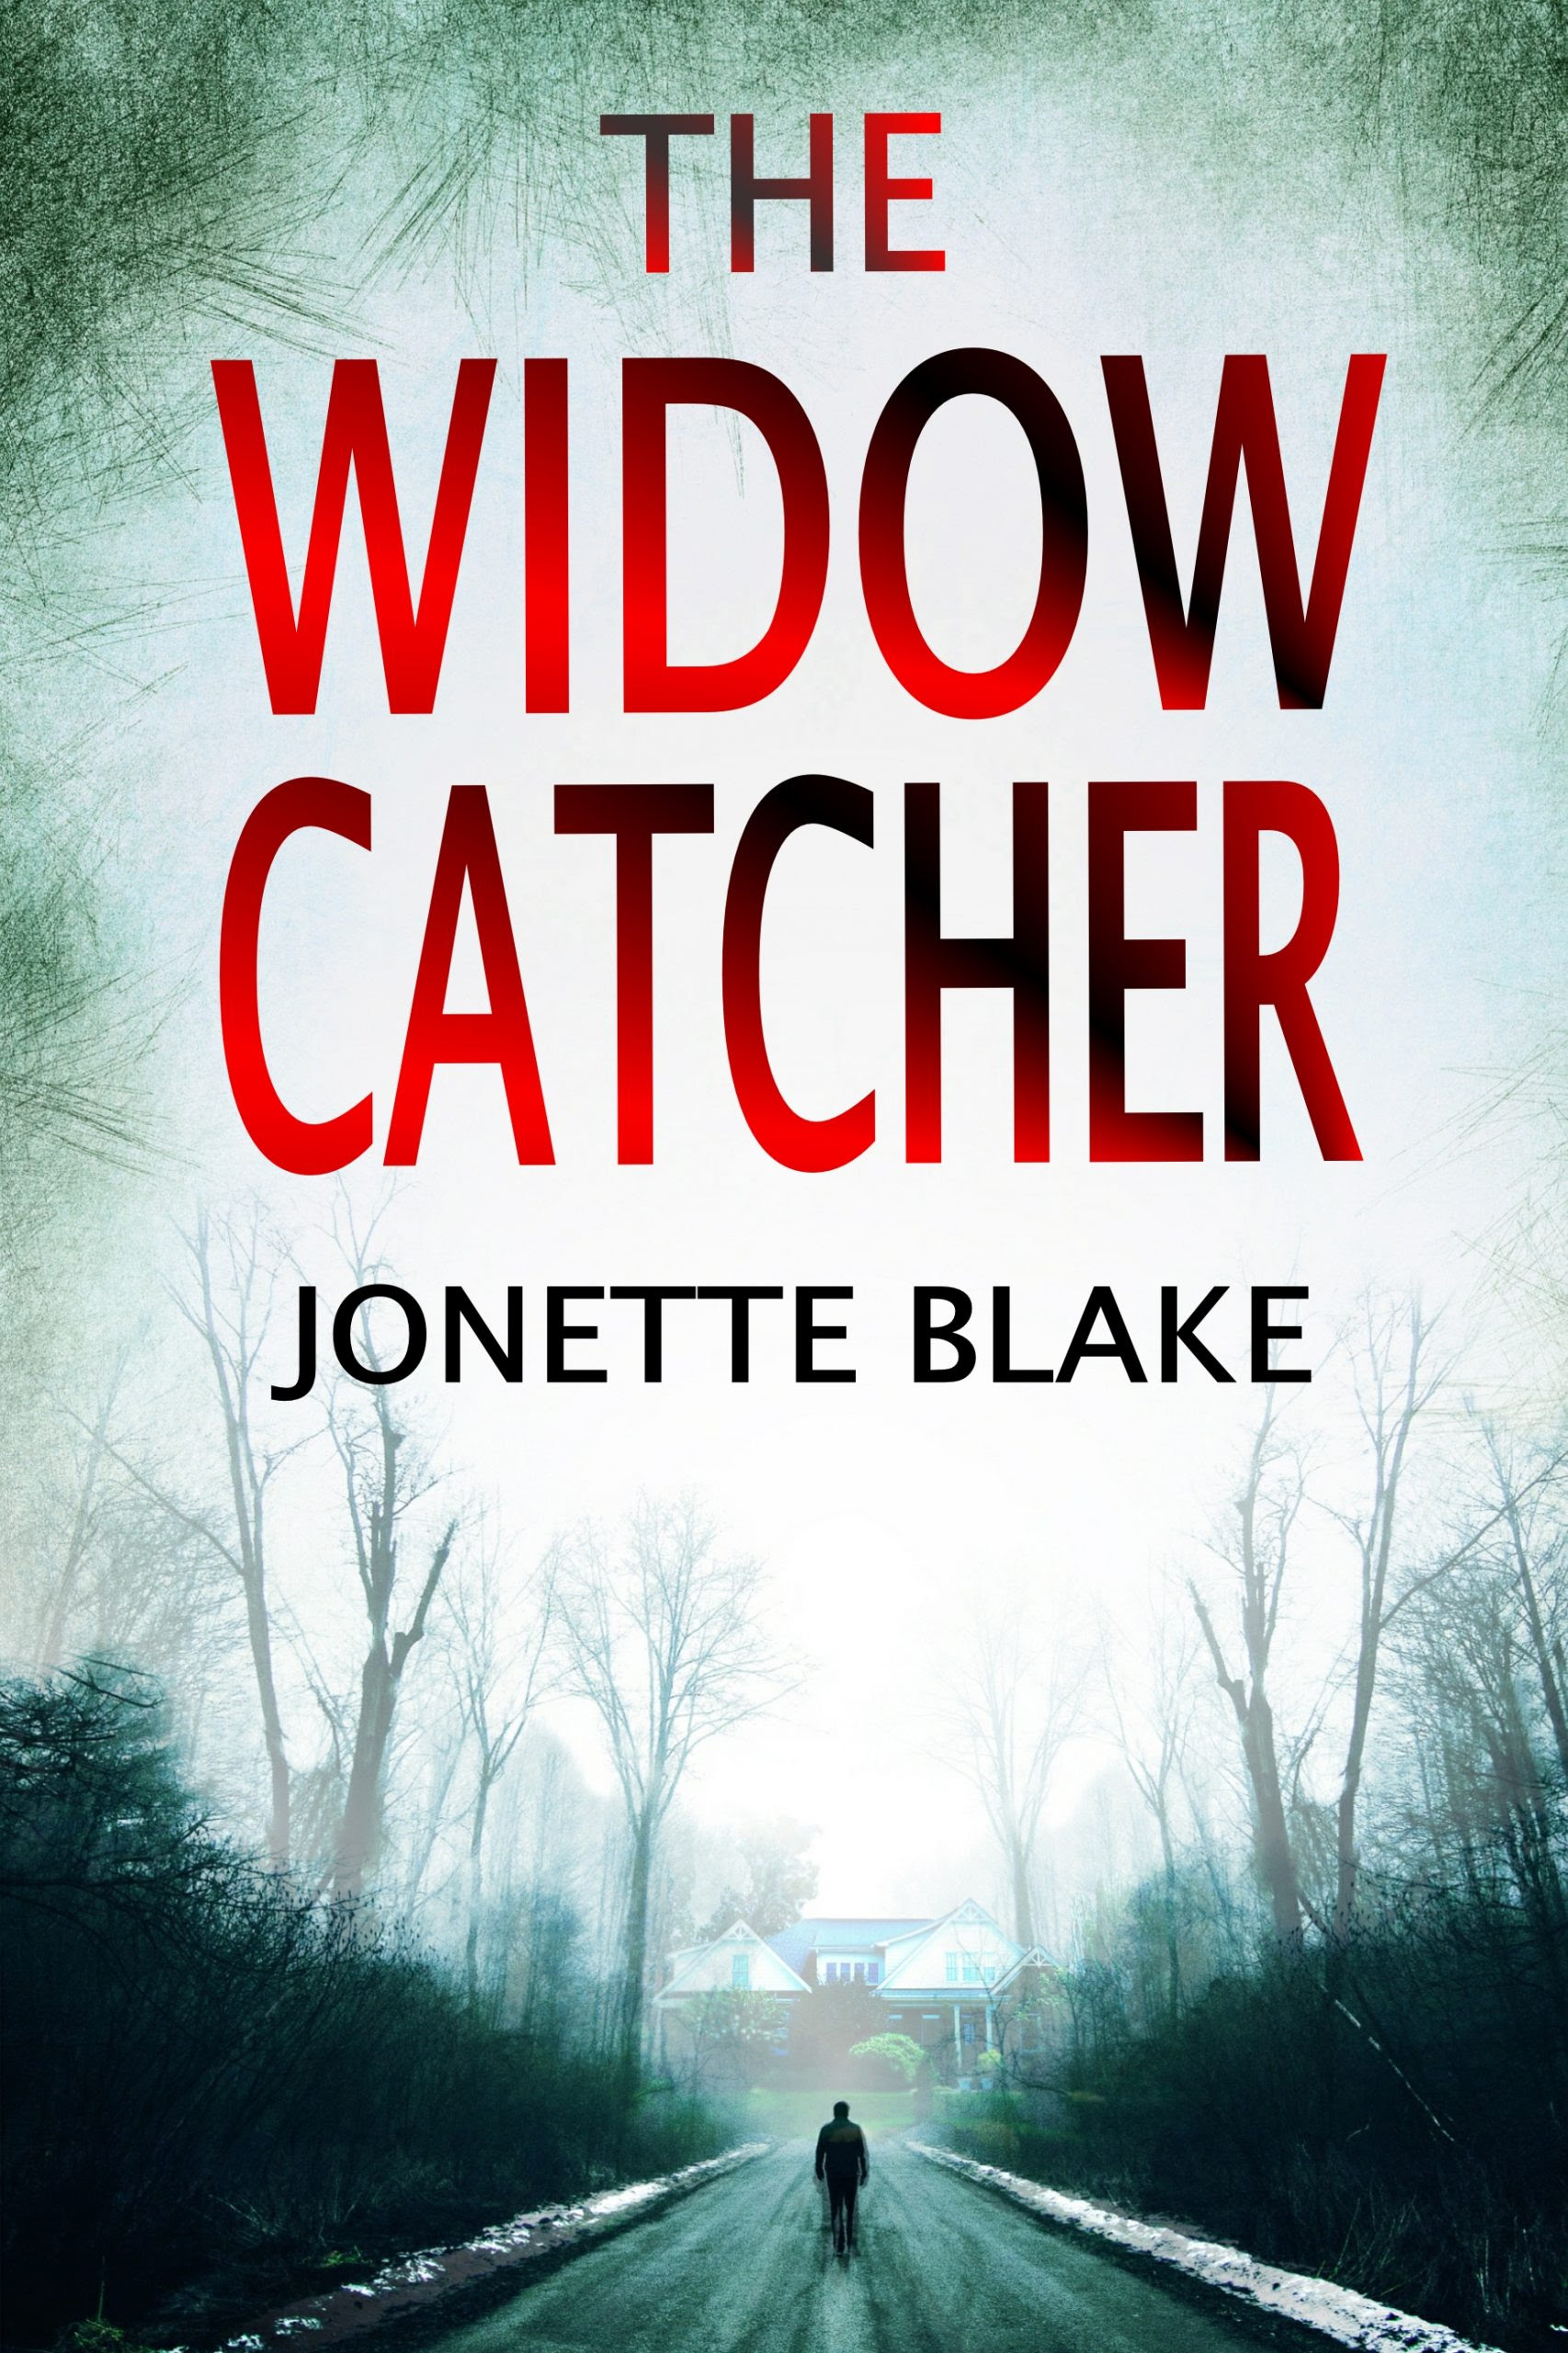 The Widow Catcher by Jonette Blake